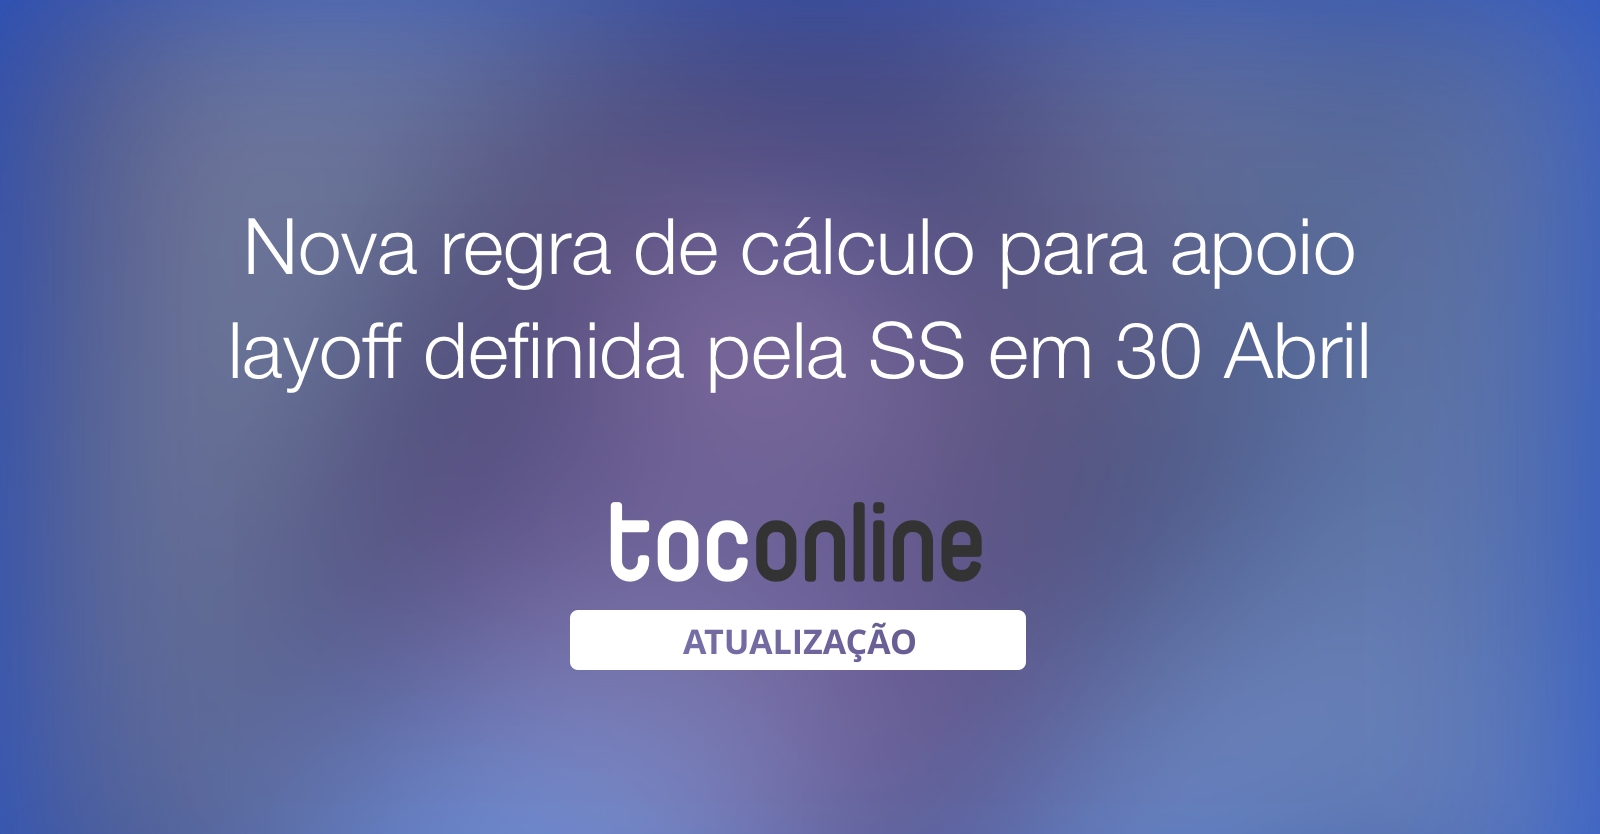 Nova regra calculo